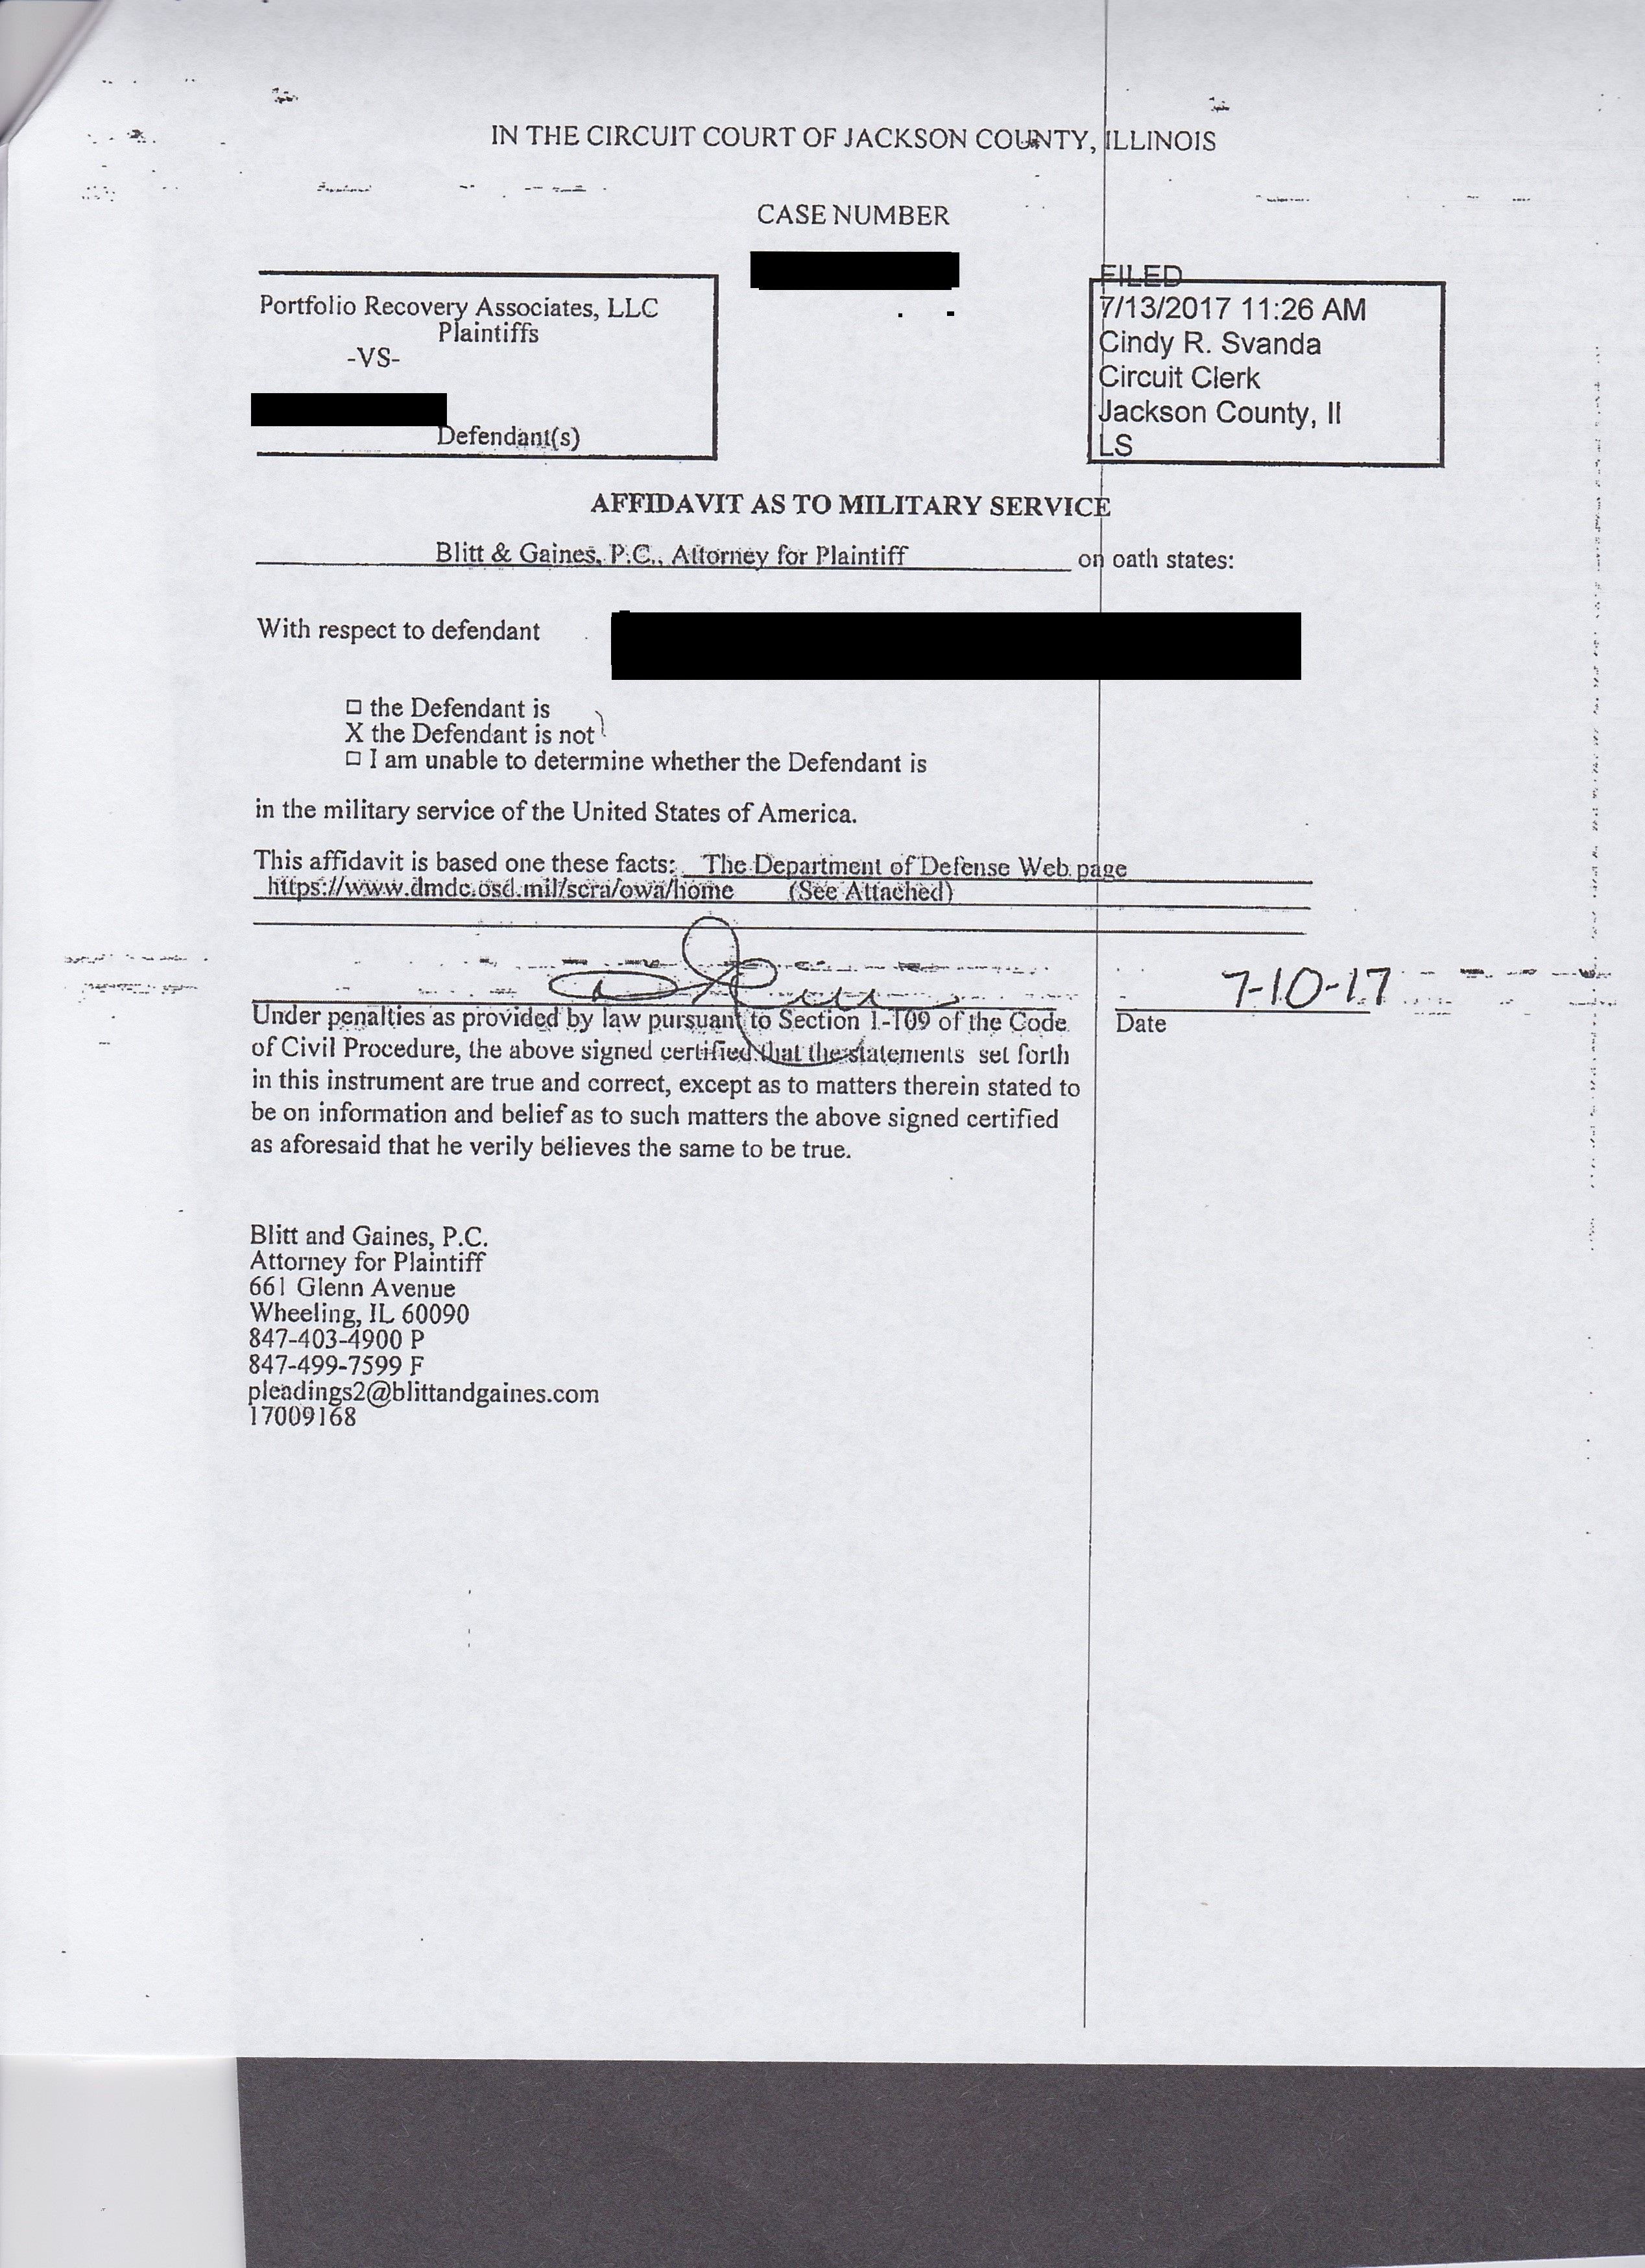 NEED HELP! Sued by Portfolio Recovery Associate in JACKSON county